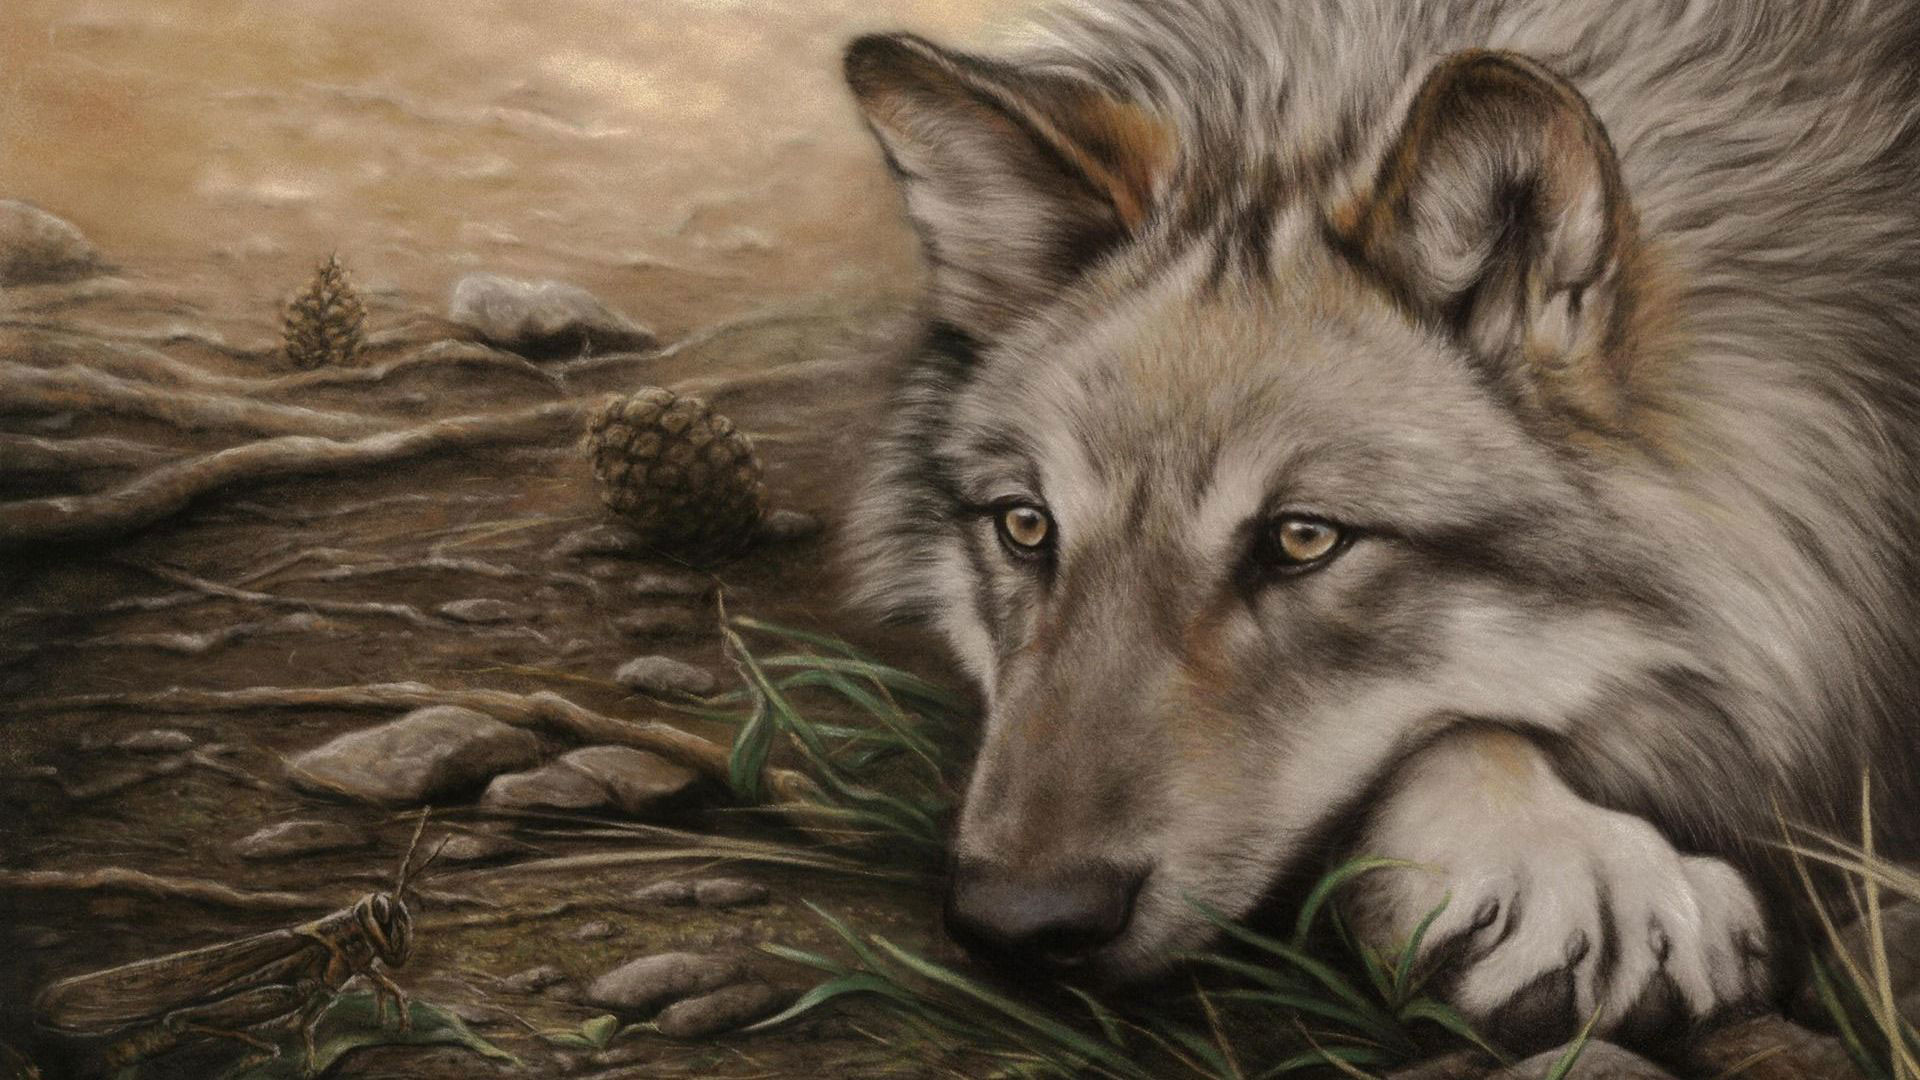 hd pics photos attractive animated wolf drawing painting hd quality desktop  background wallpaper